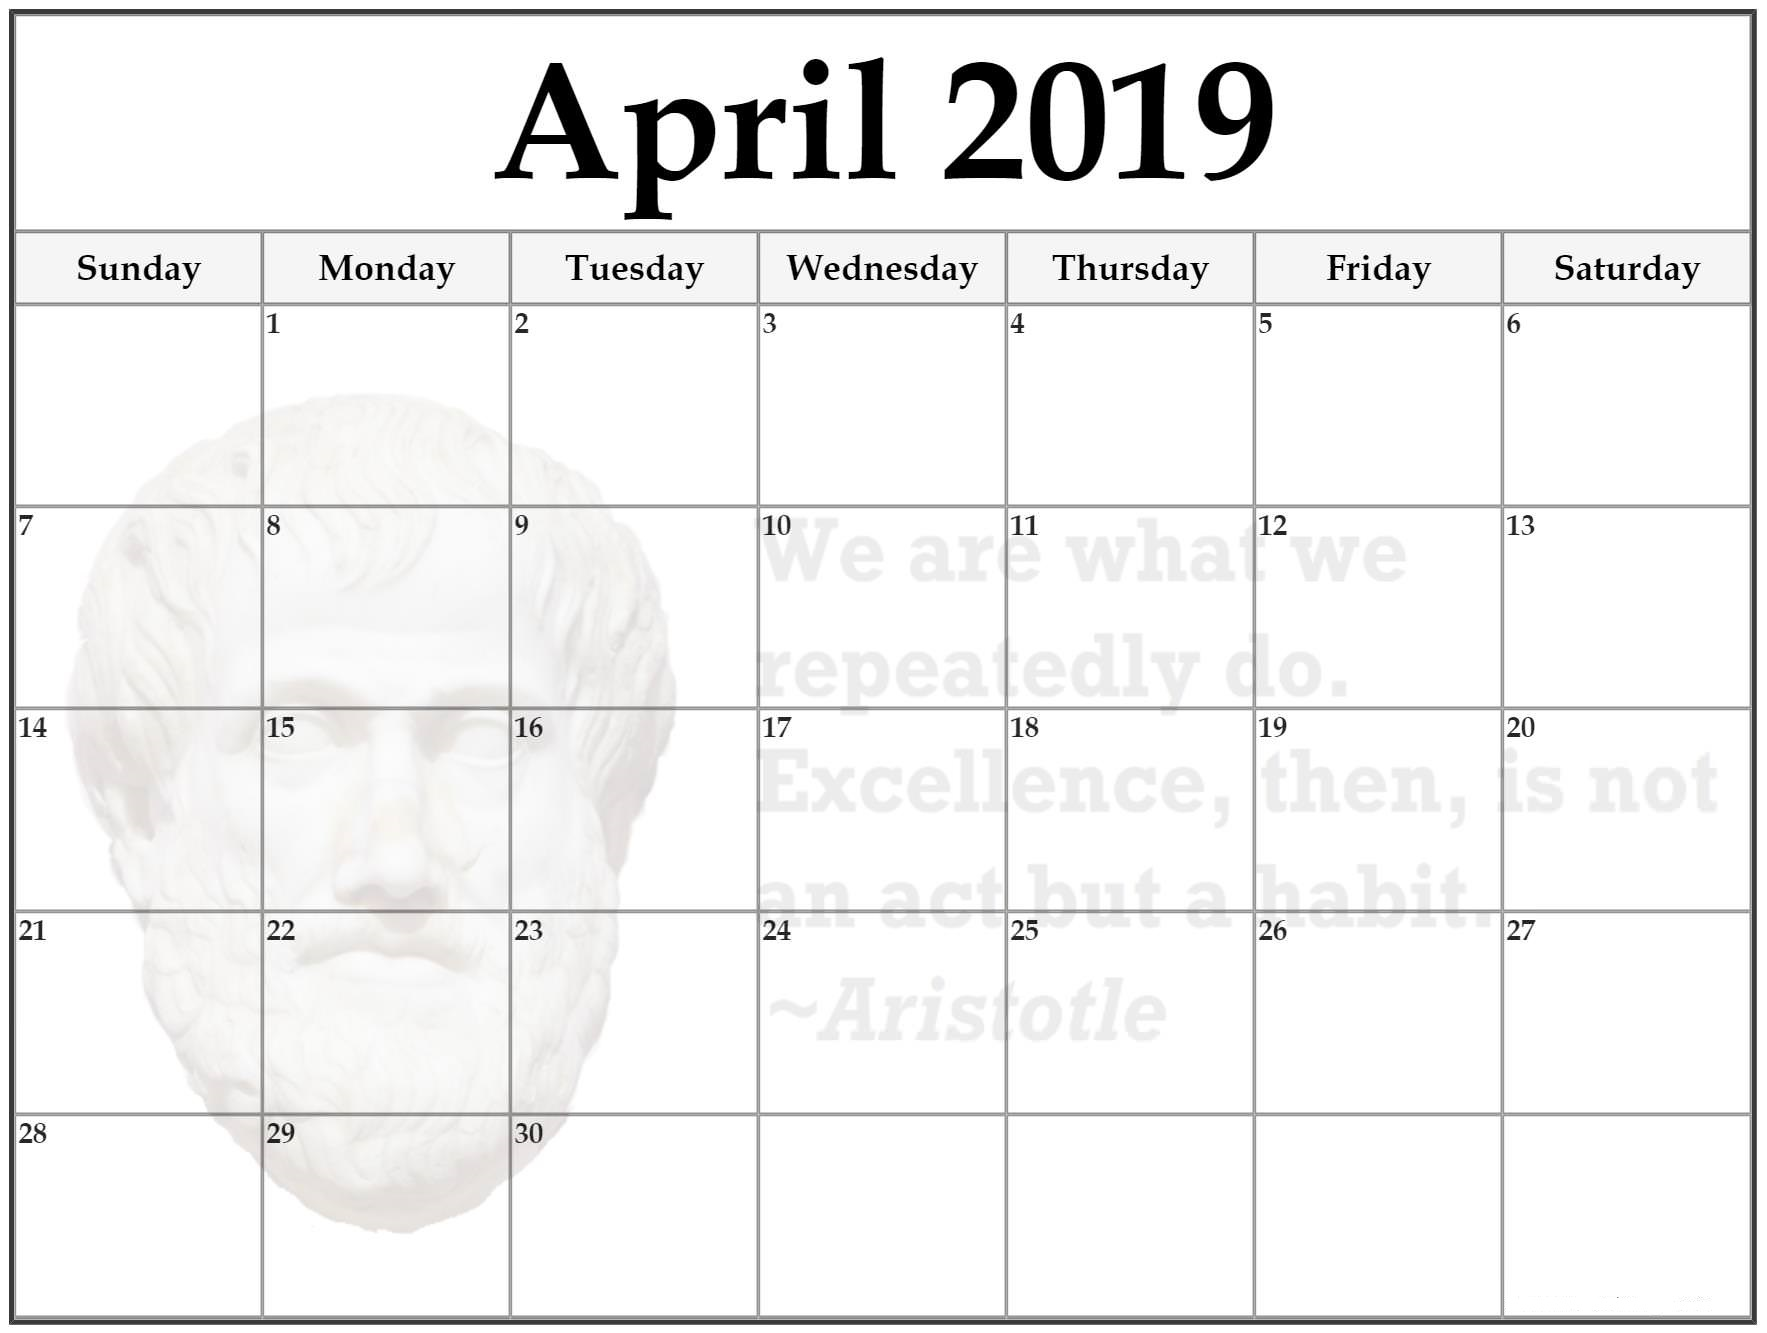 Monthly Blank Calendar for April 2019